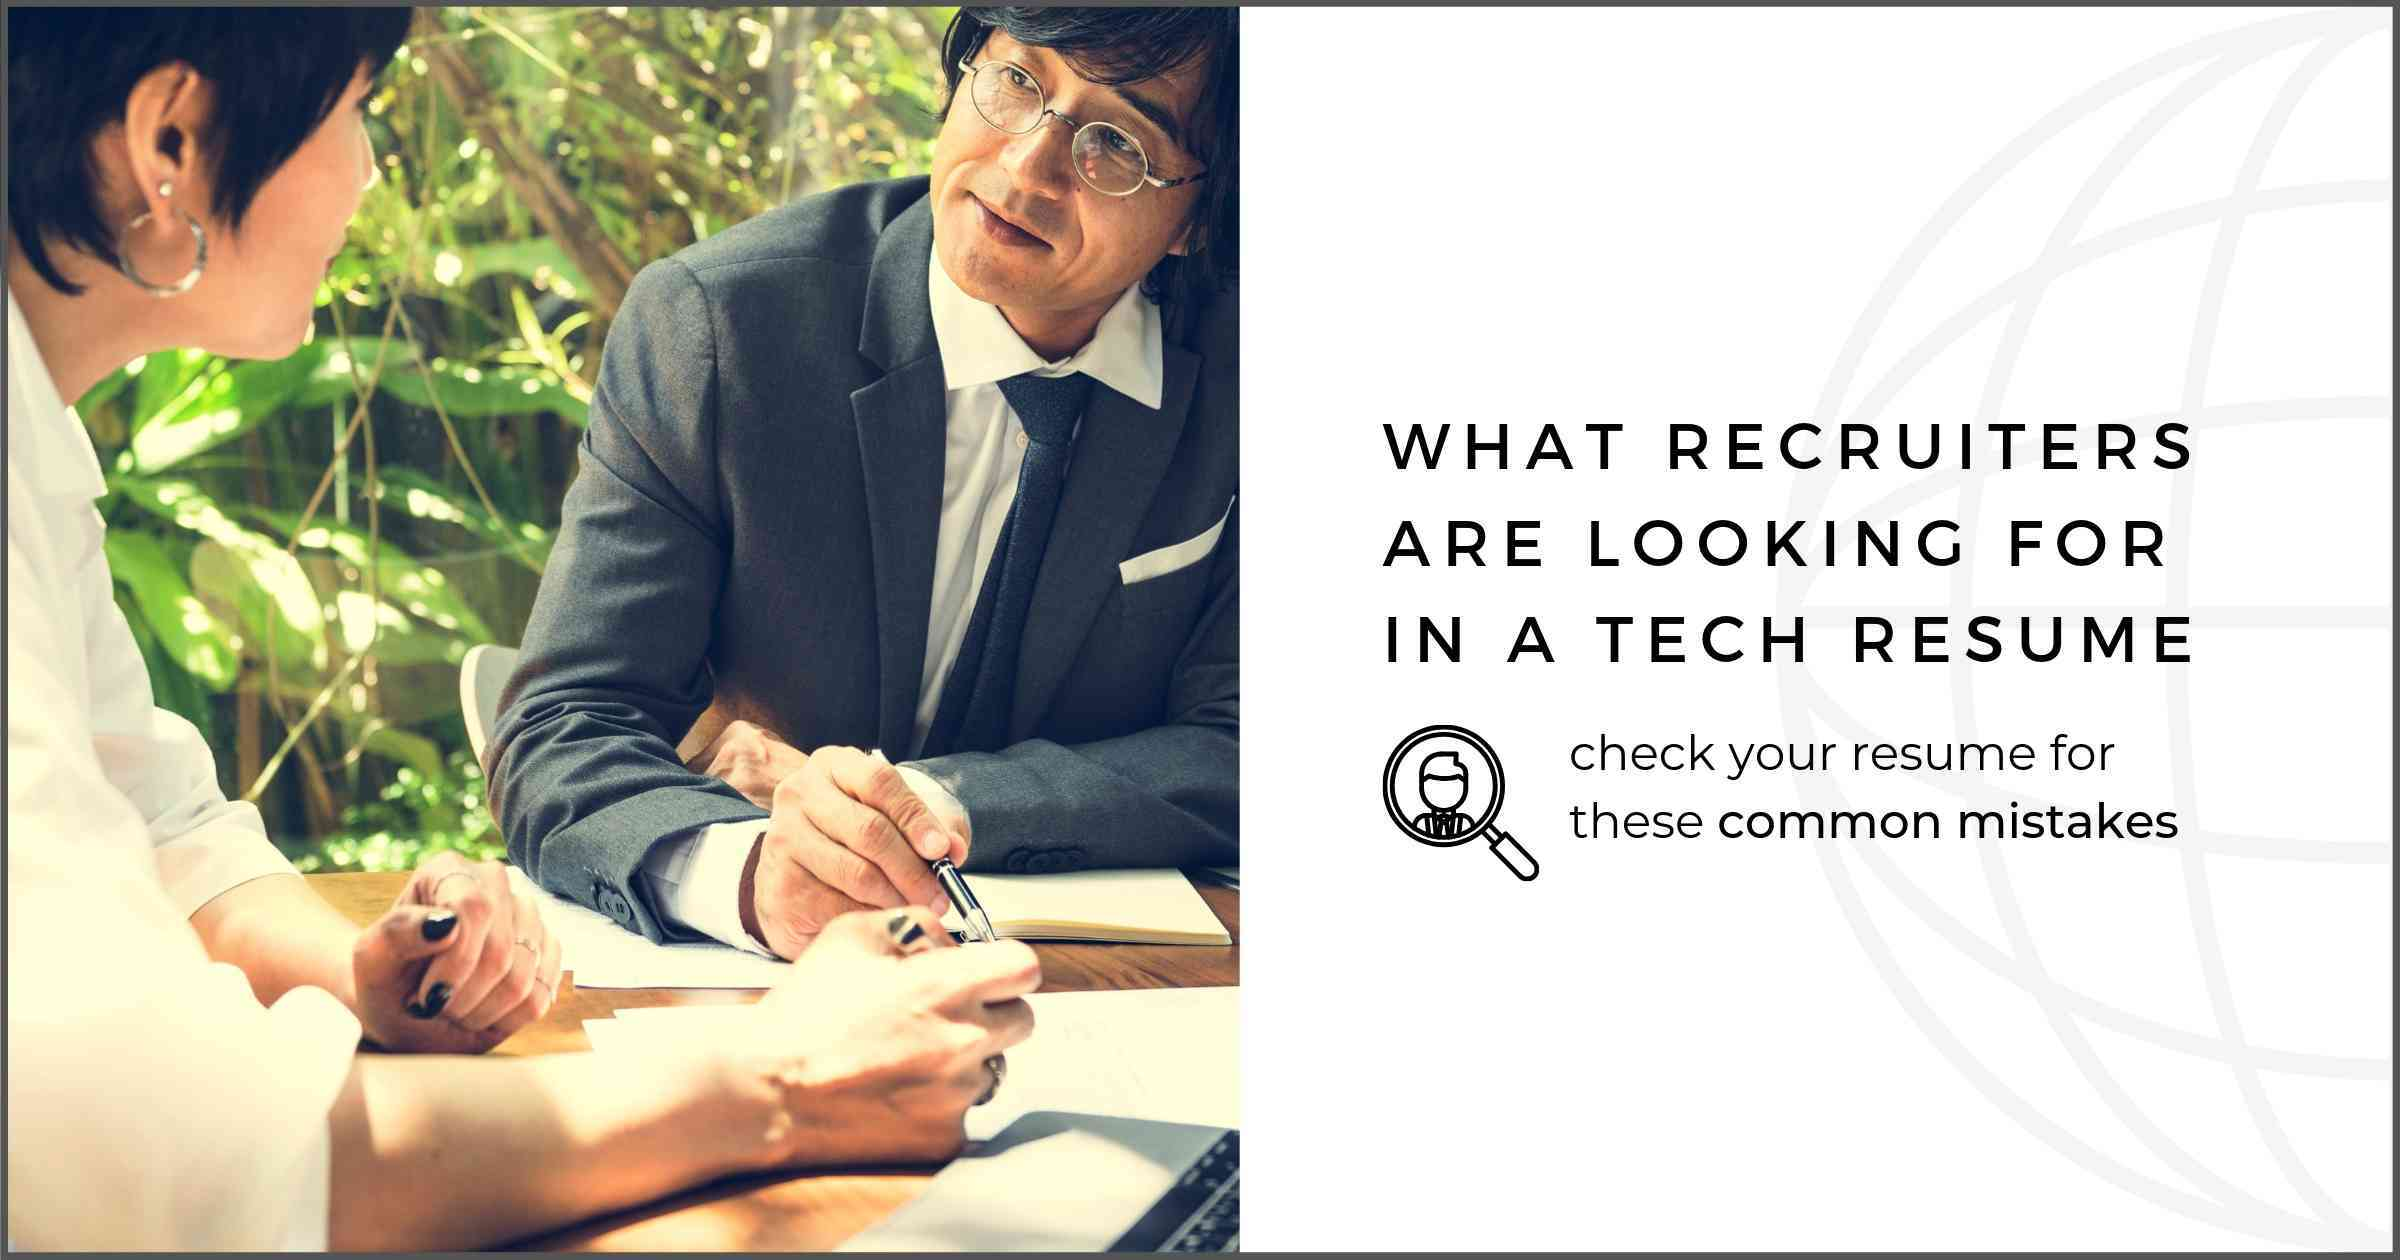 What Recruiters Are Looking For on a Tech Resume